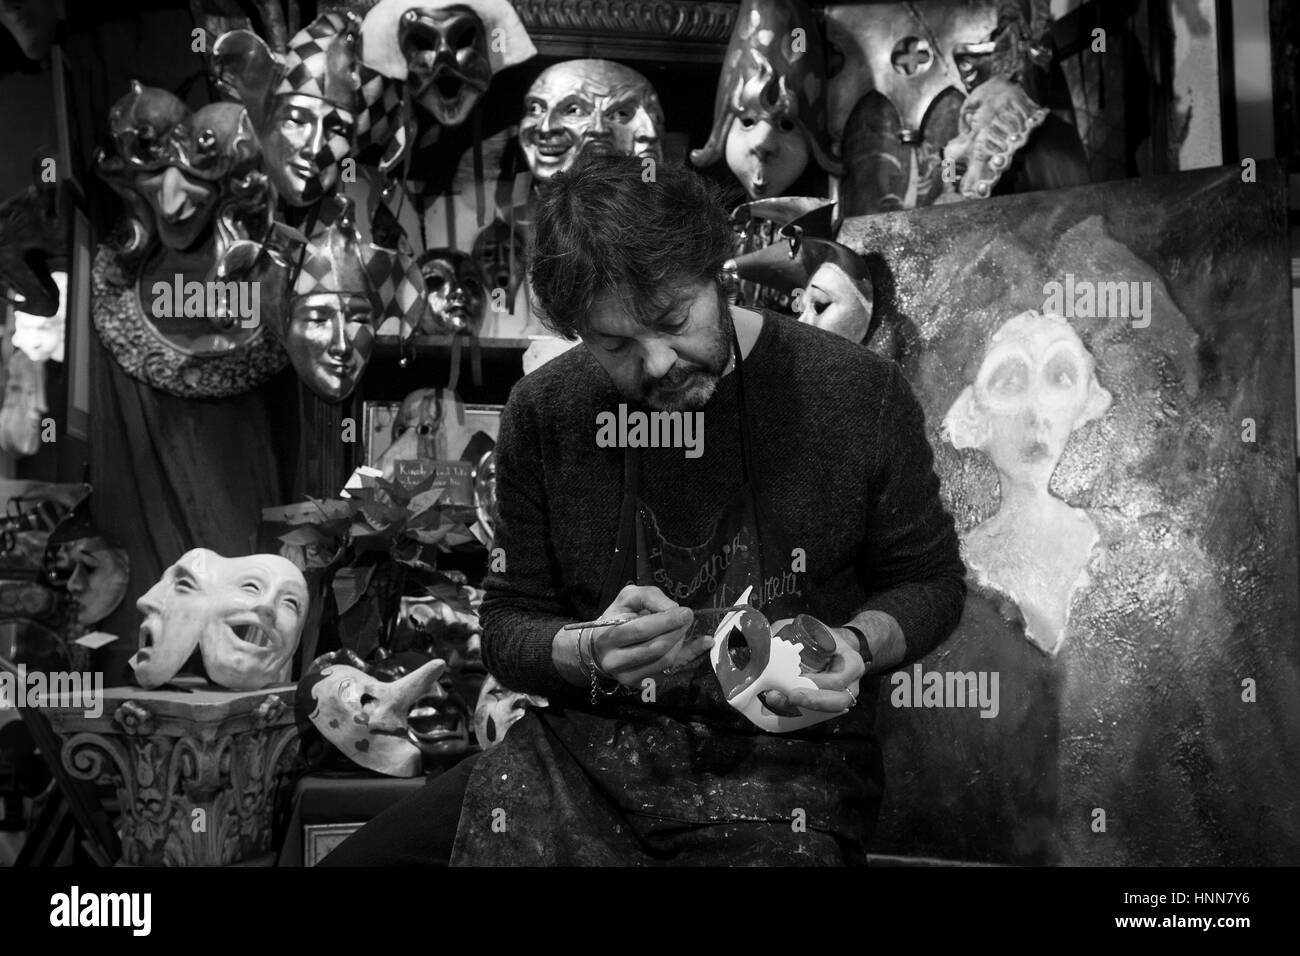 The venetian art of creating carnival masks of 'El Mascarer', that also creates the masks of 'Eyes Wide - Stock Image